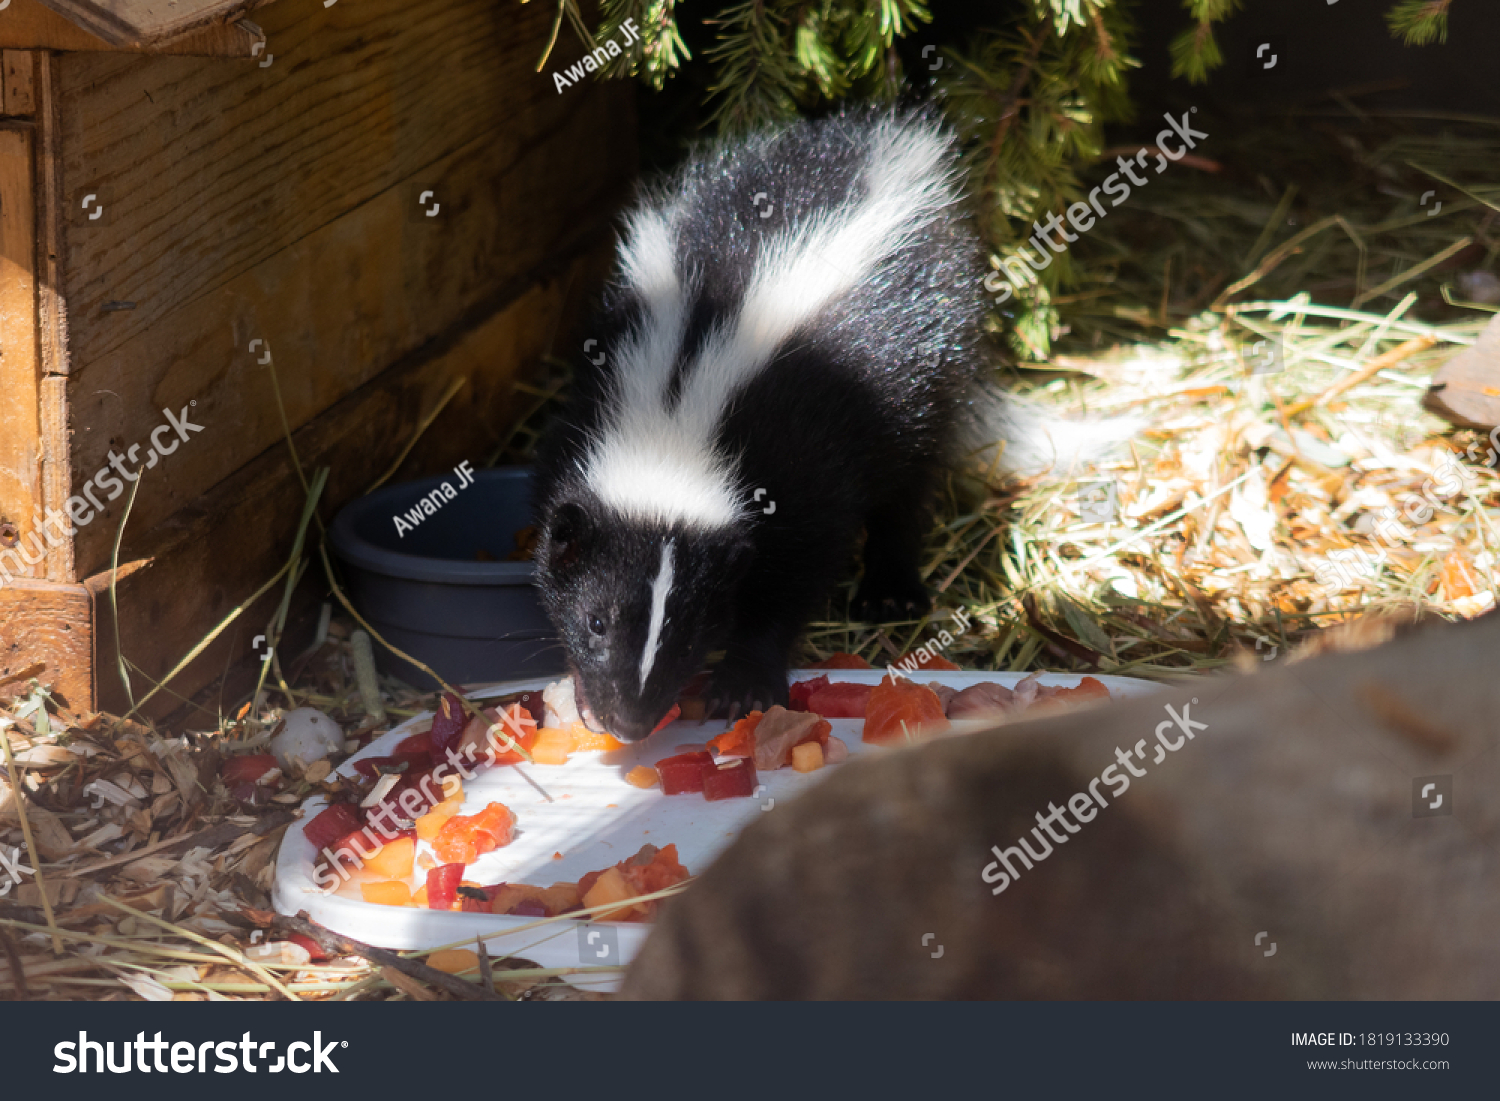 stock-photo-view-of-a-cute-skunk-eating-